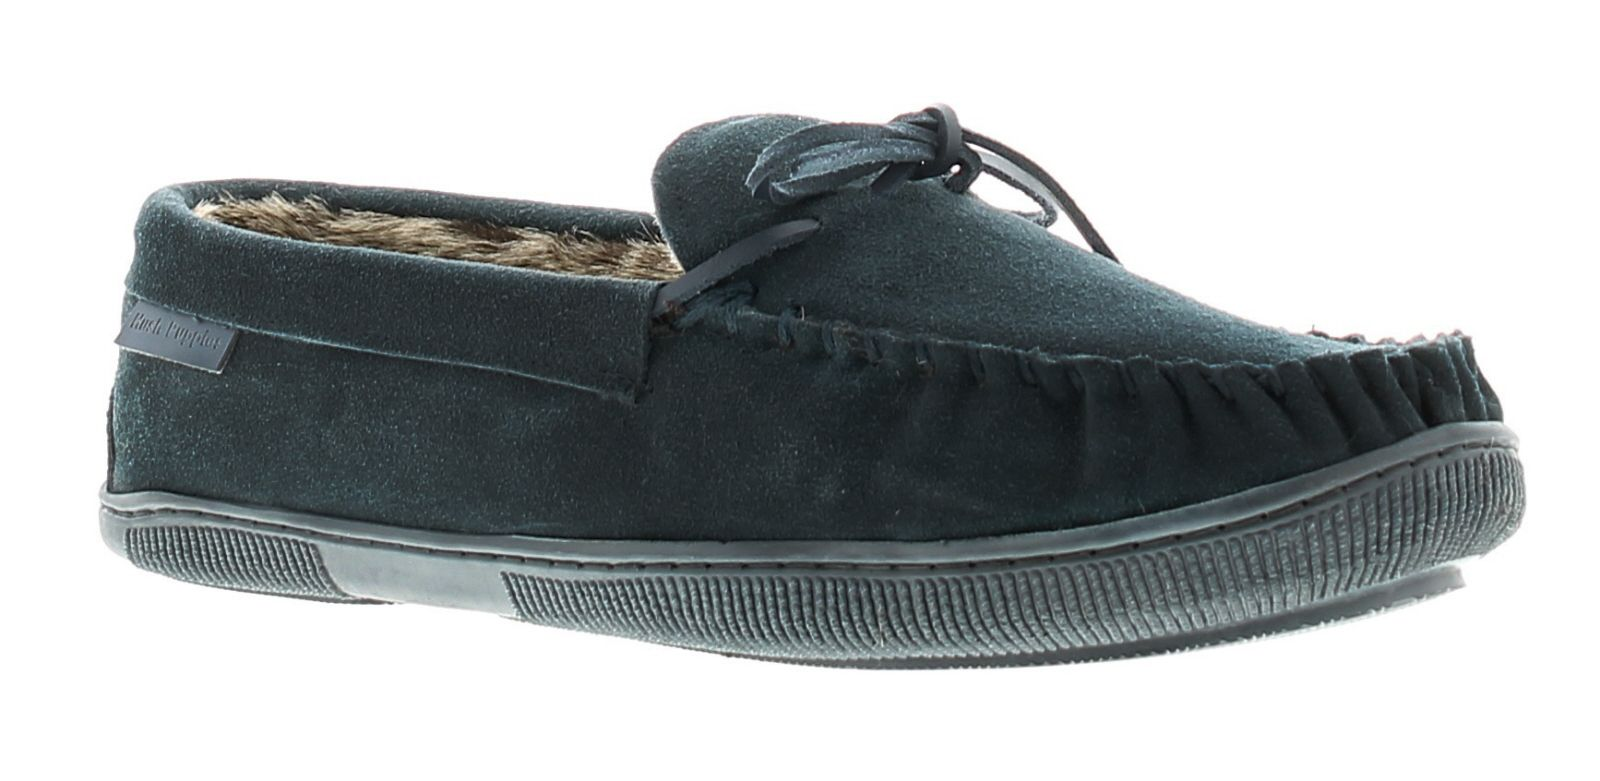 Hush Puppies ace leather mens full slippers navy